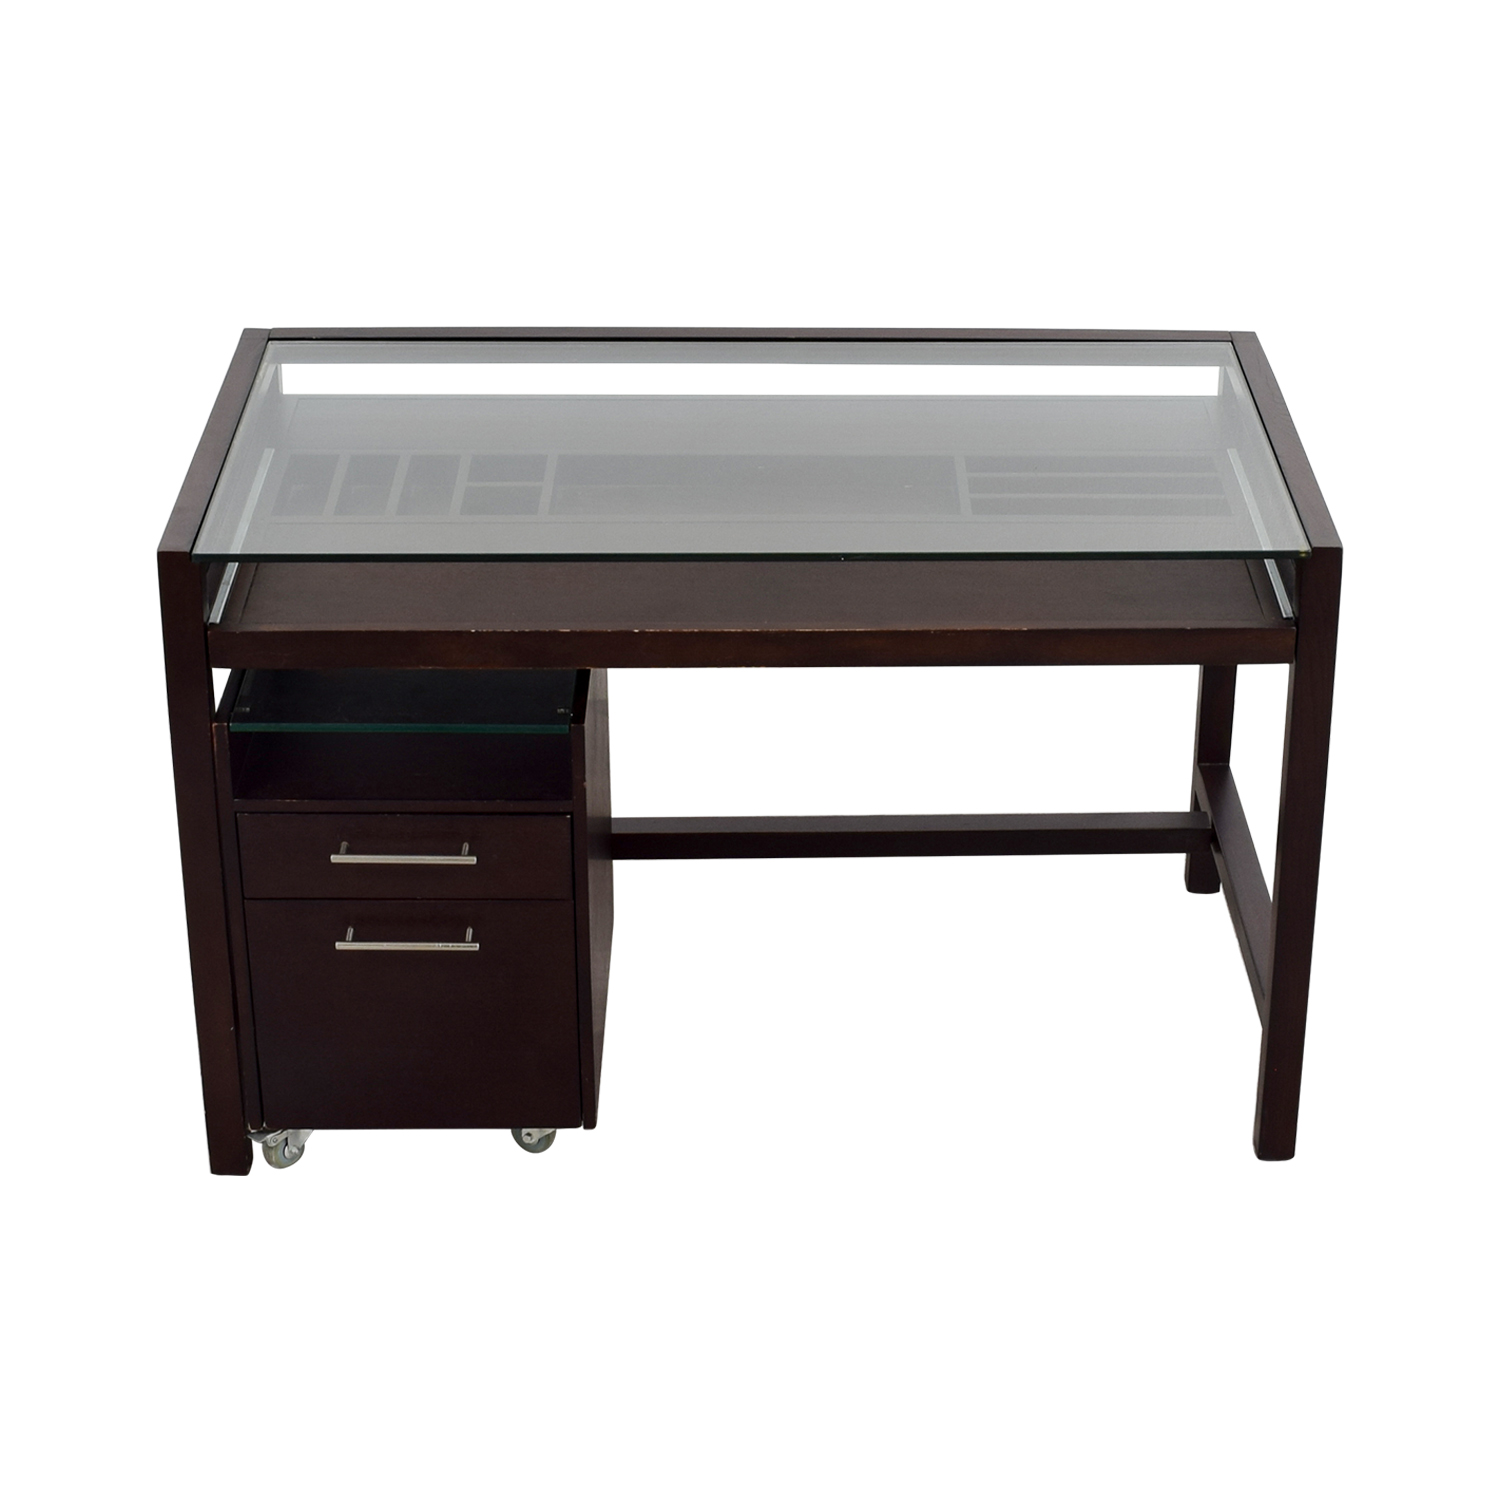 87 off glass top dark brown wood desk with file cabinet tables Glass furniture tops